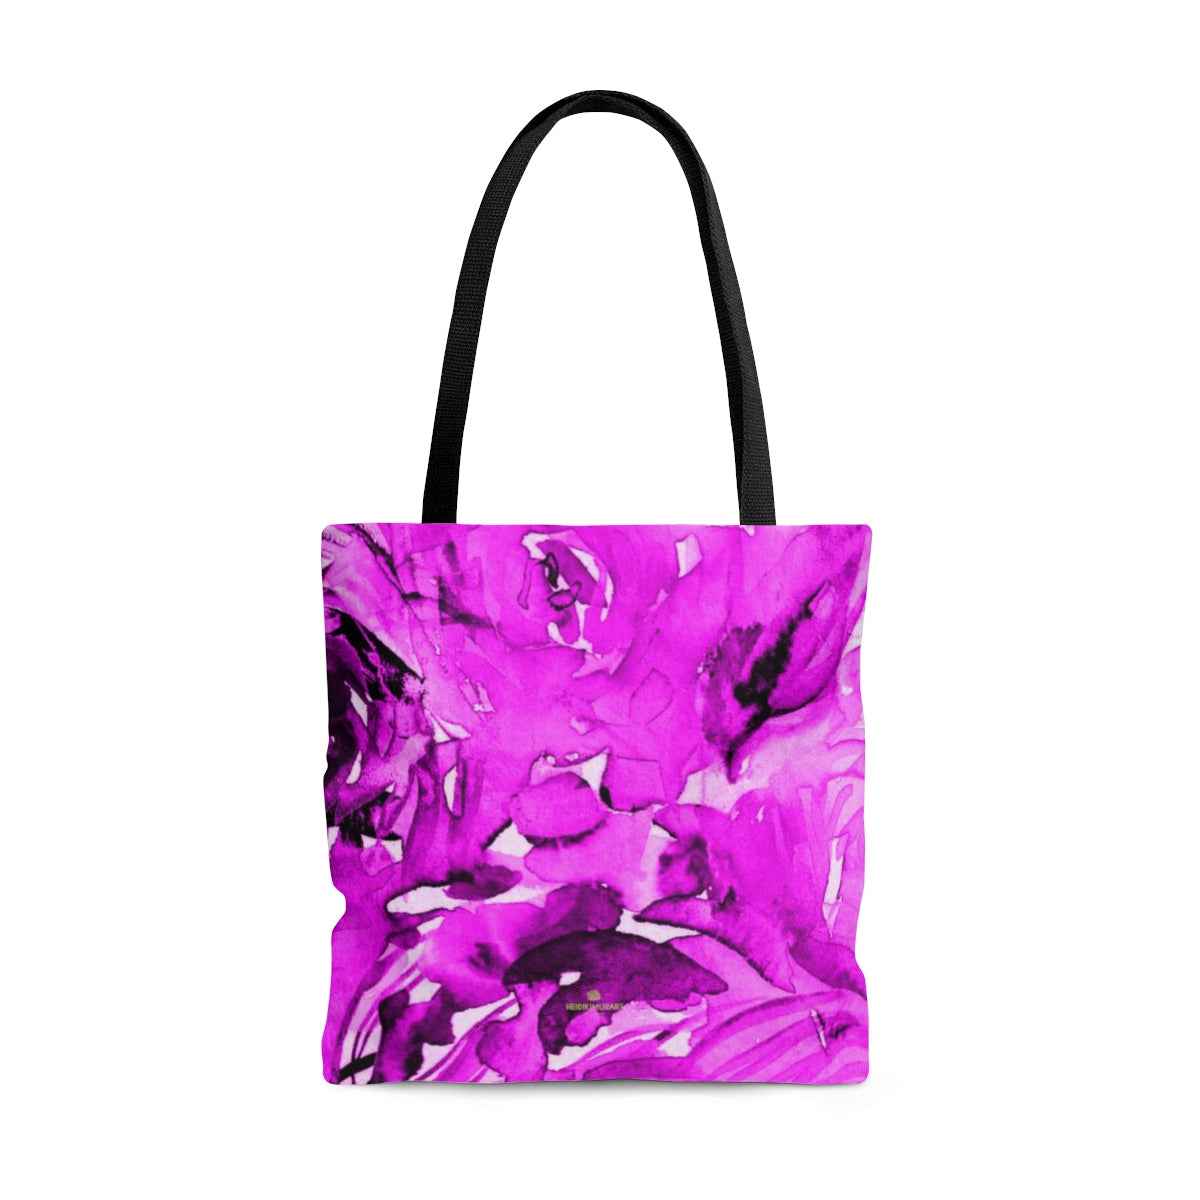 Shocking Pink Rose Flower Floral Designer Small Medium Large Tote Bag - Made in USA-Bags-Large-Heidi Kimura Art LLC